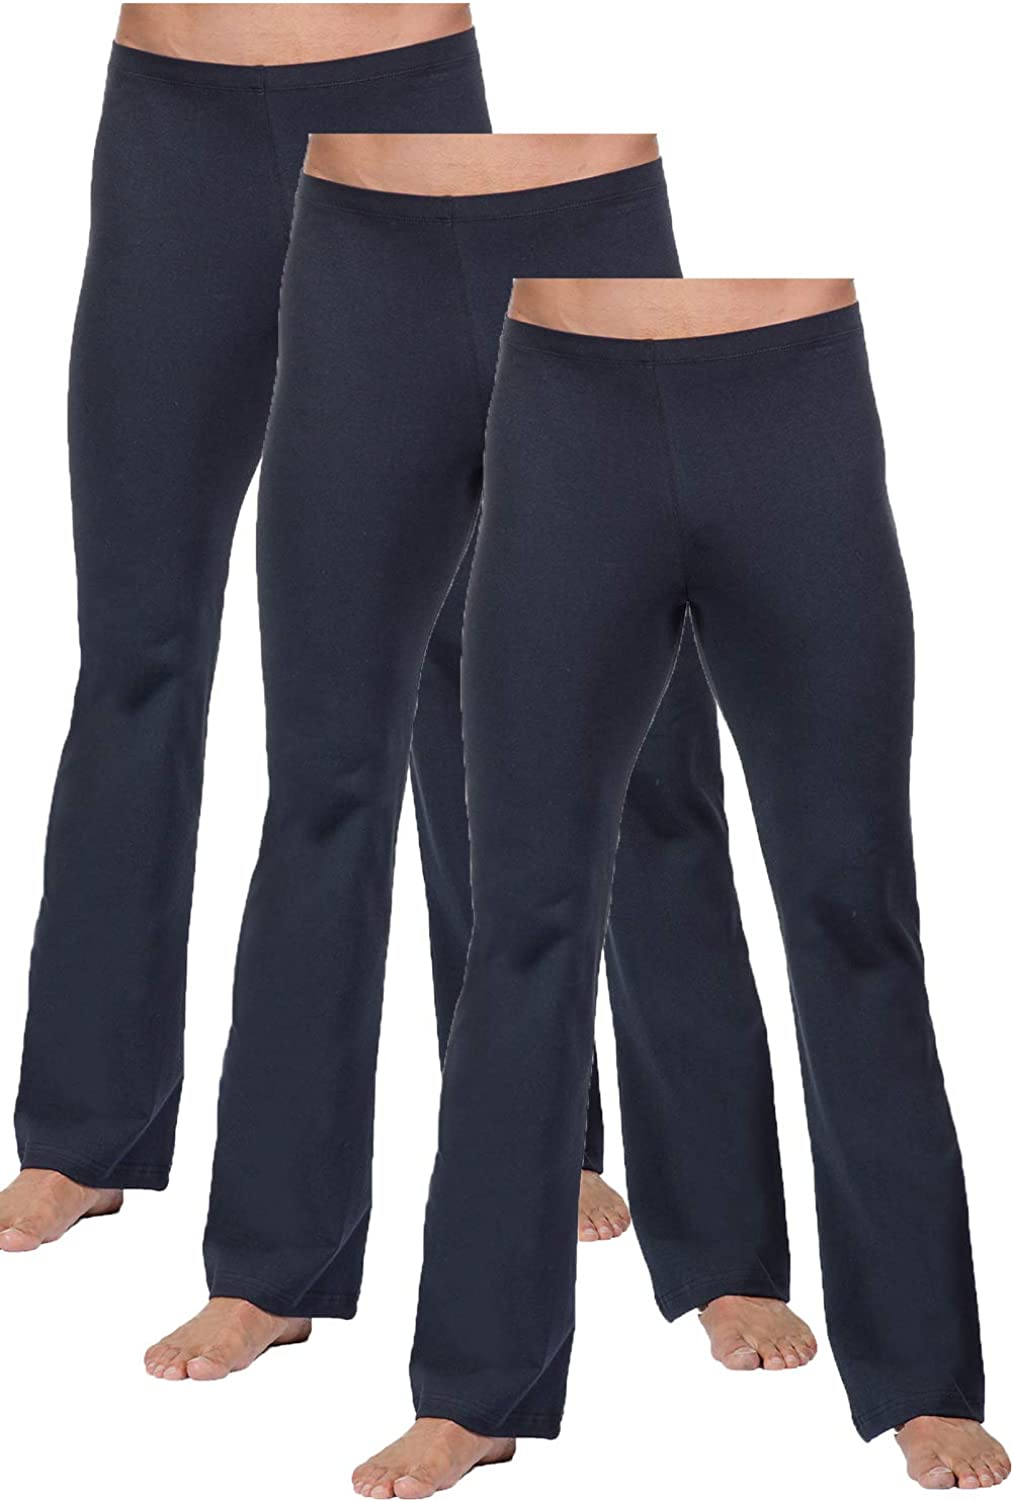 FitwearUSA Men's Basic Dance Pant Dallas Mall with All stores are sold - Ballroom Elastic Waist